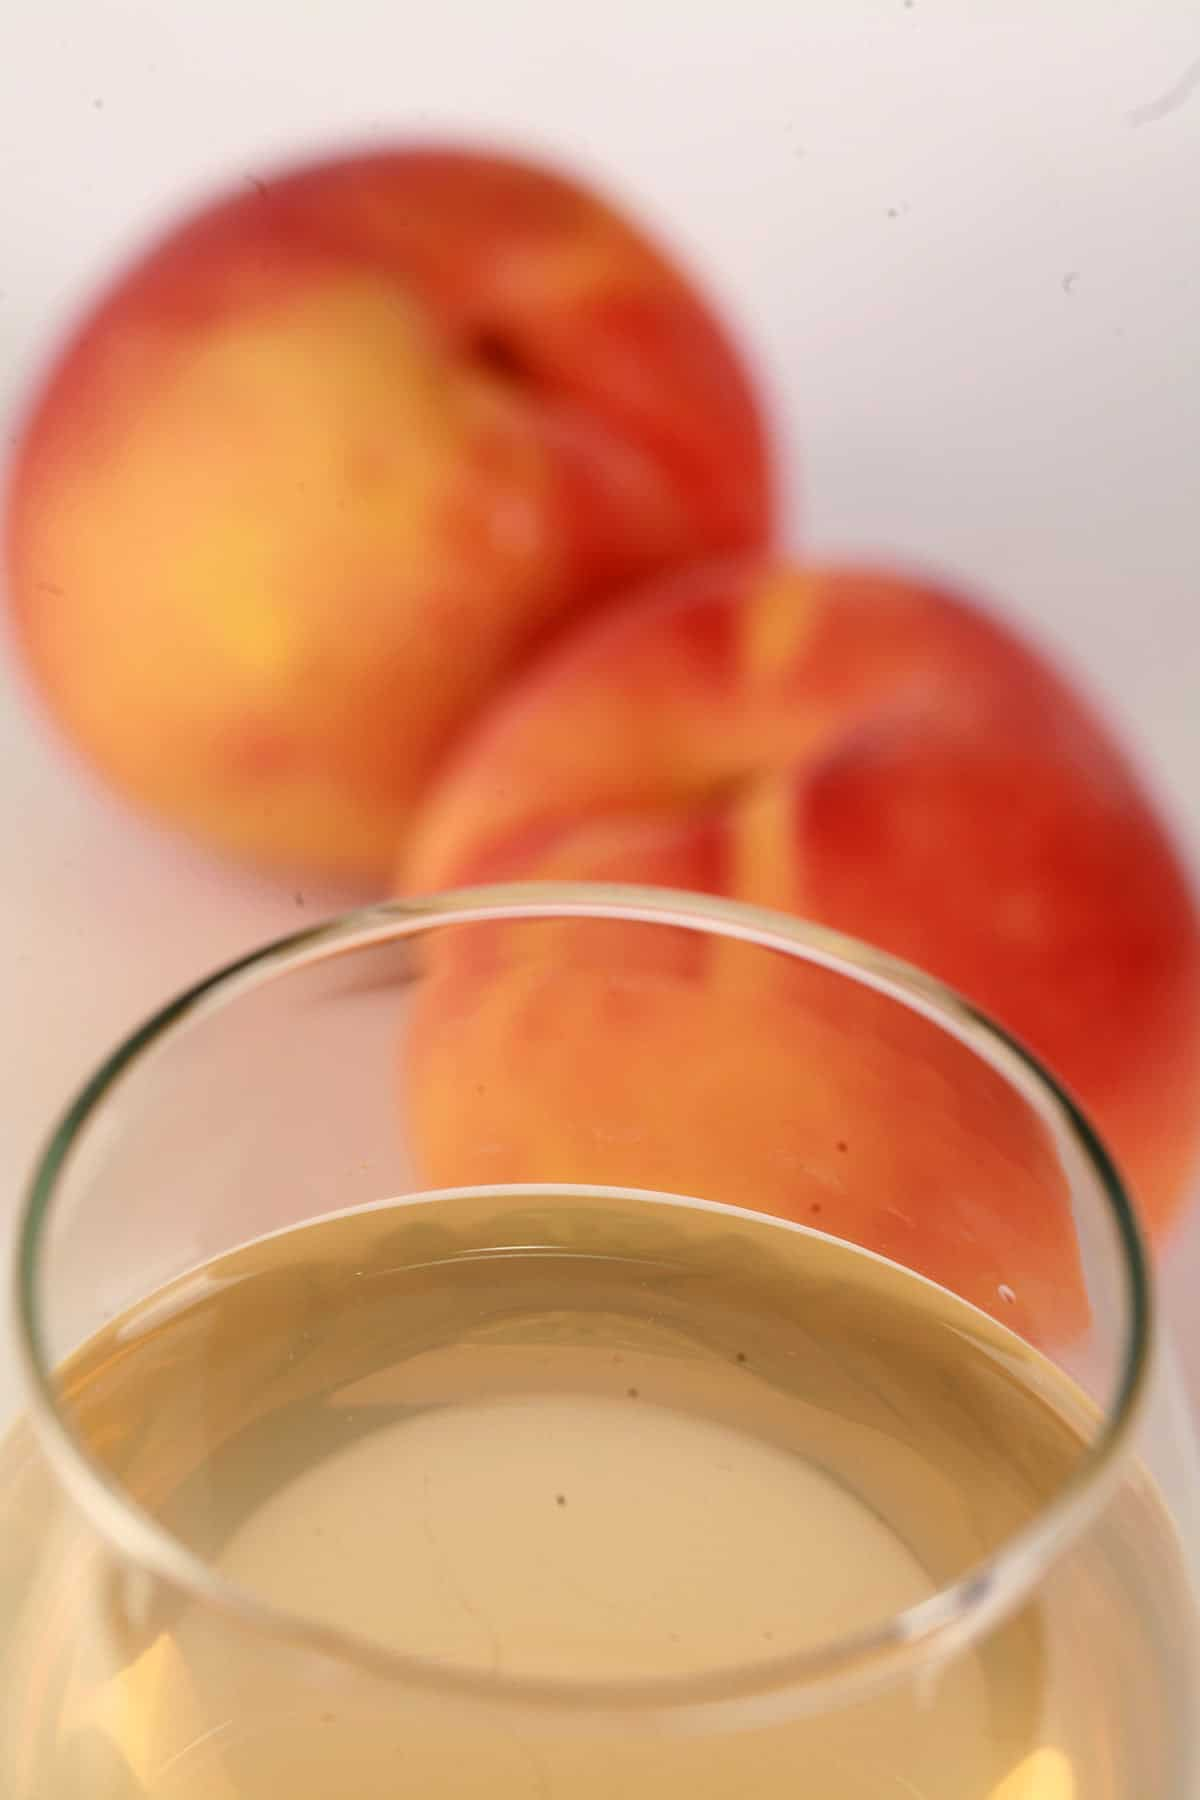 A glass of pale peach coloured wine, with 2 fresh peaches at the base of the glass.